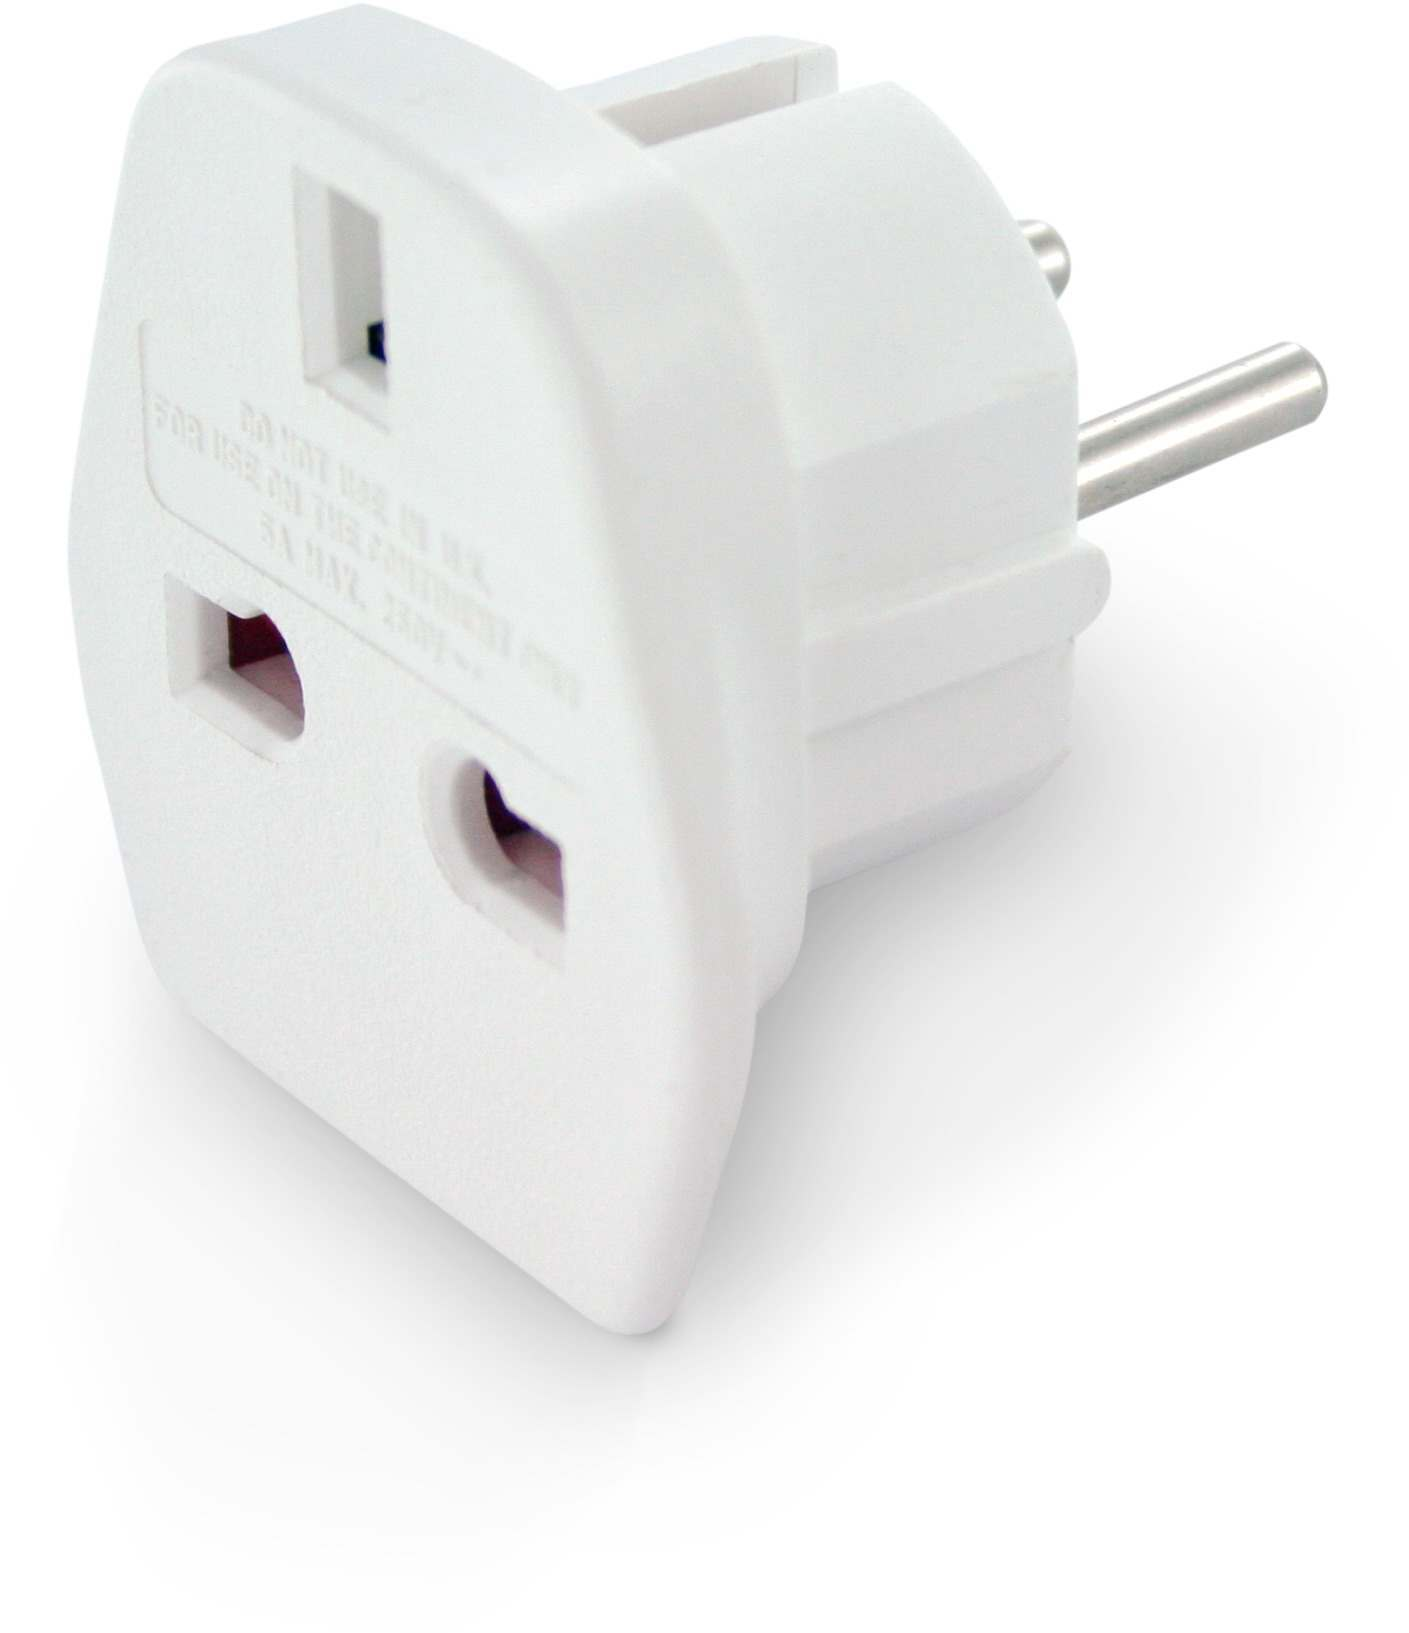 Shavers European Travel Adaptor